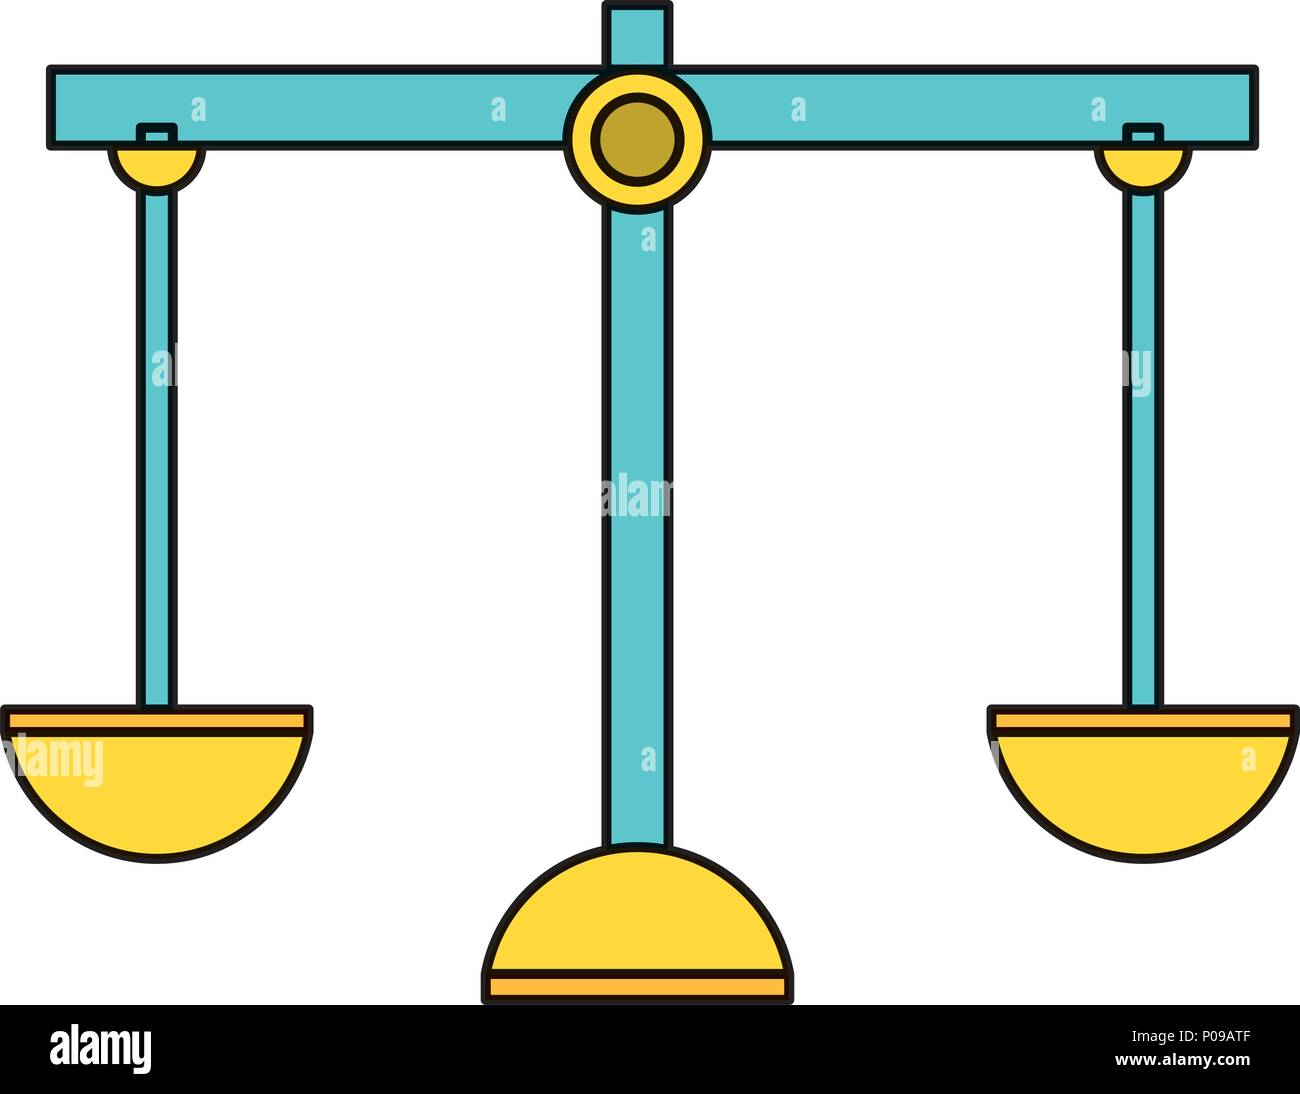 scale icon over white background, vector illustration - Stock Image